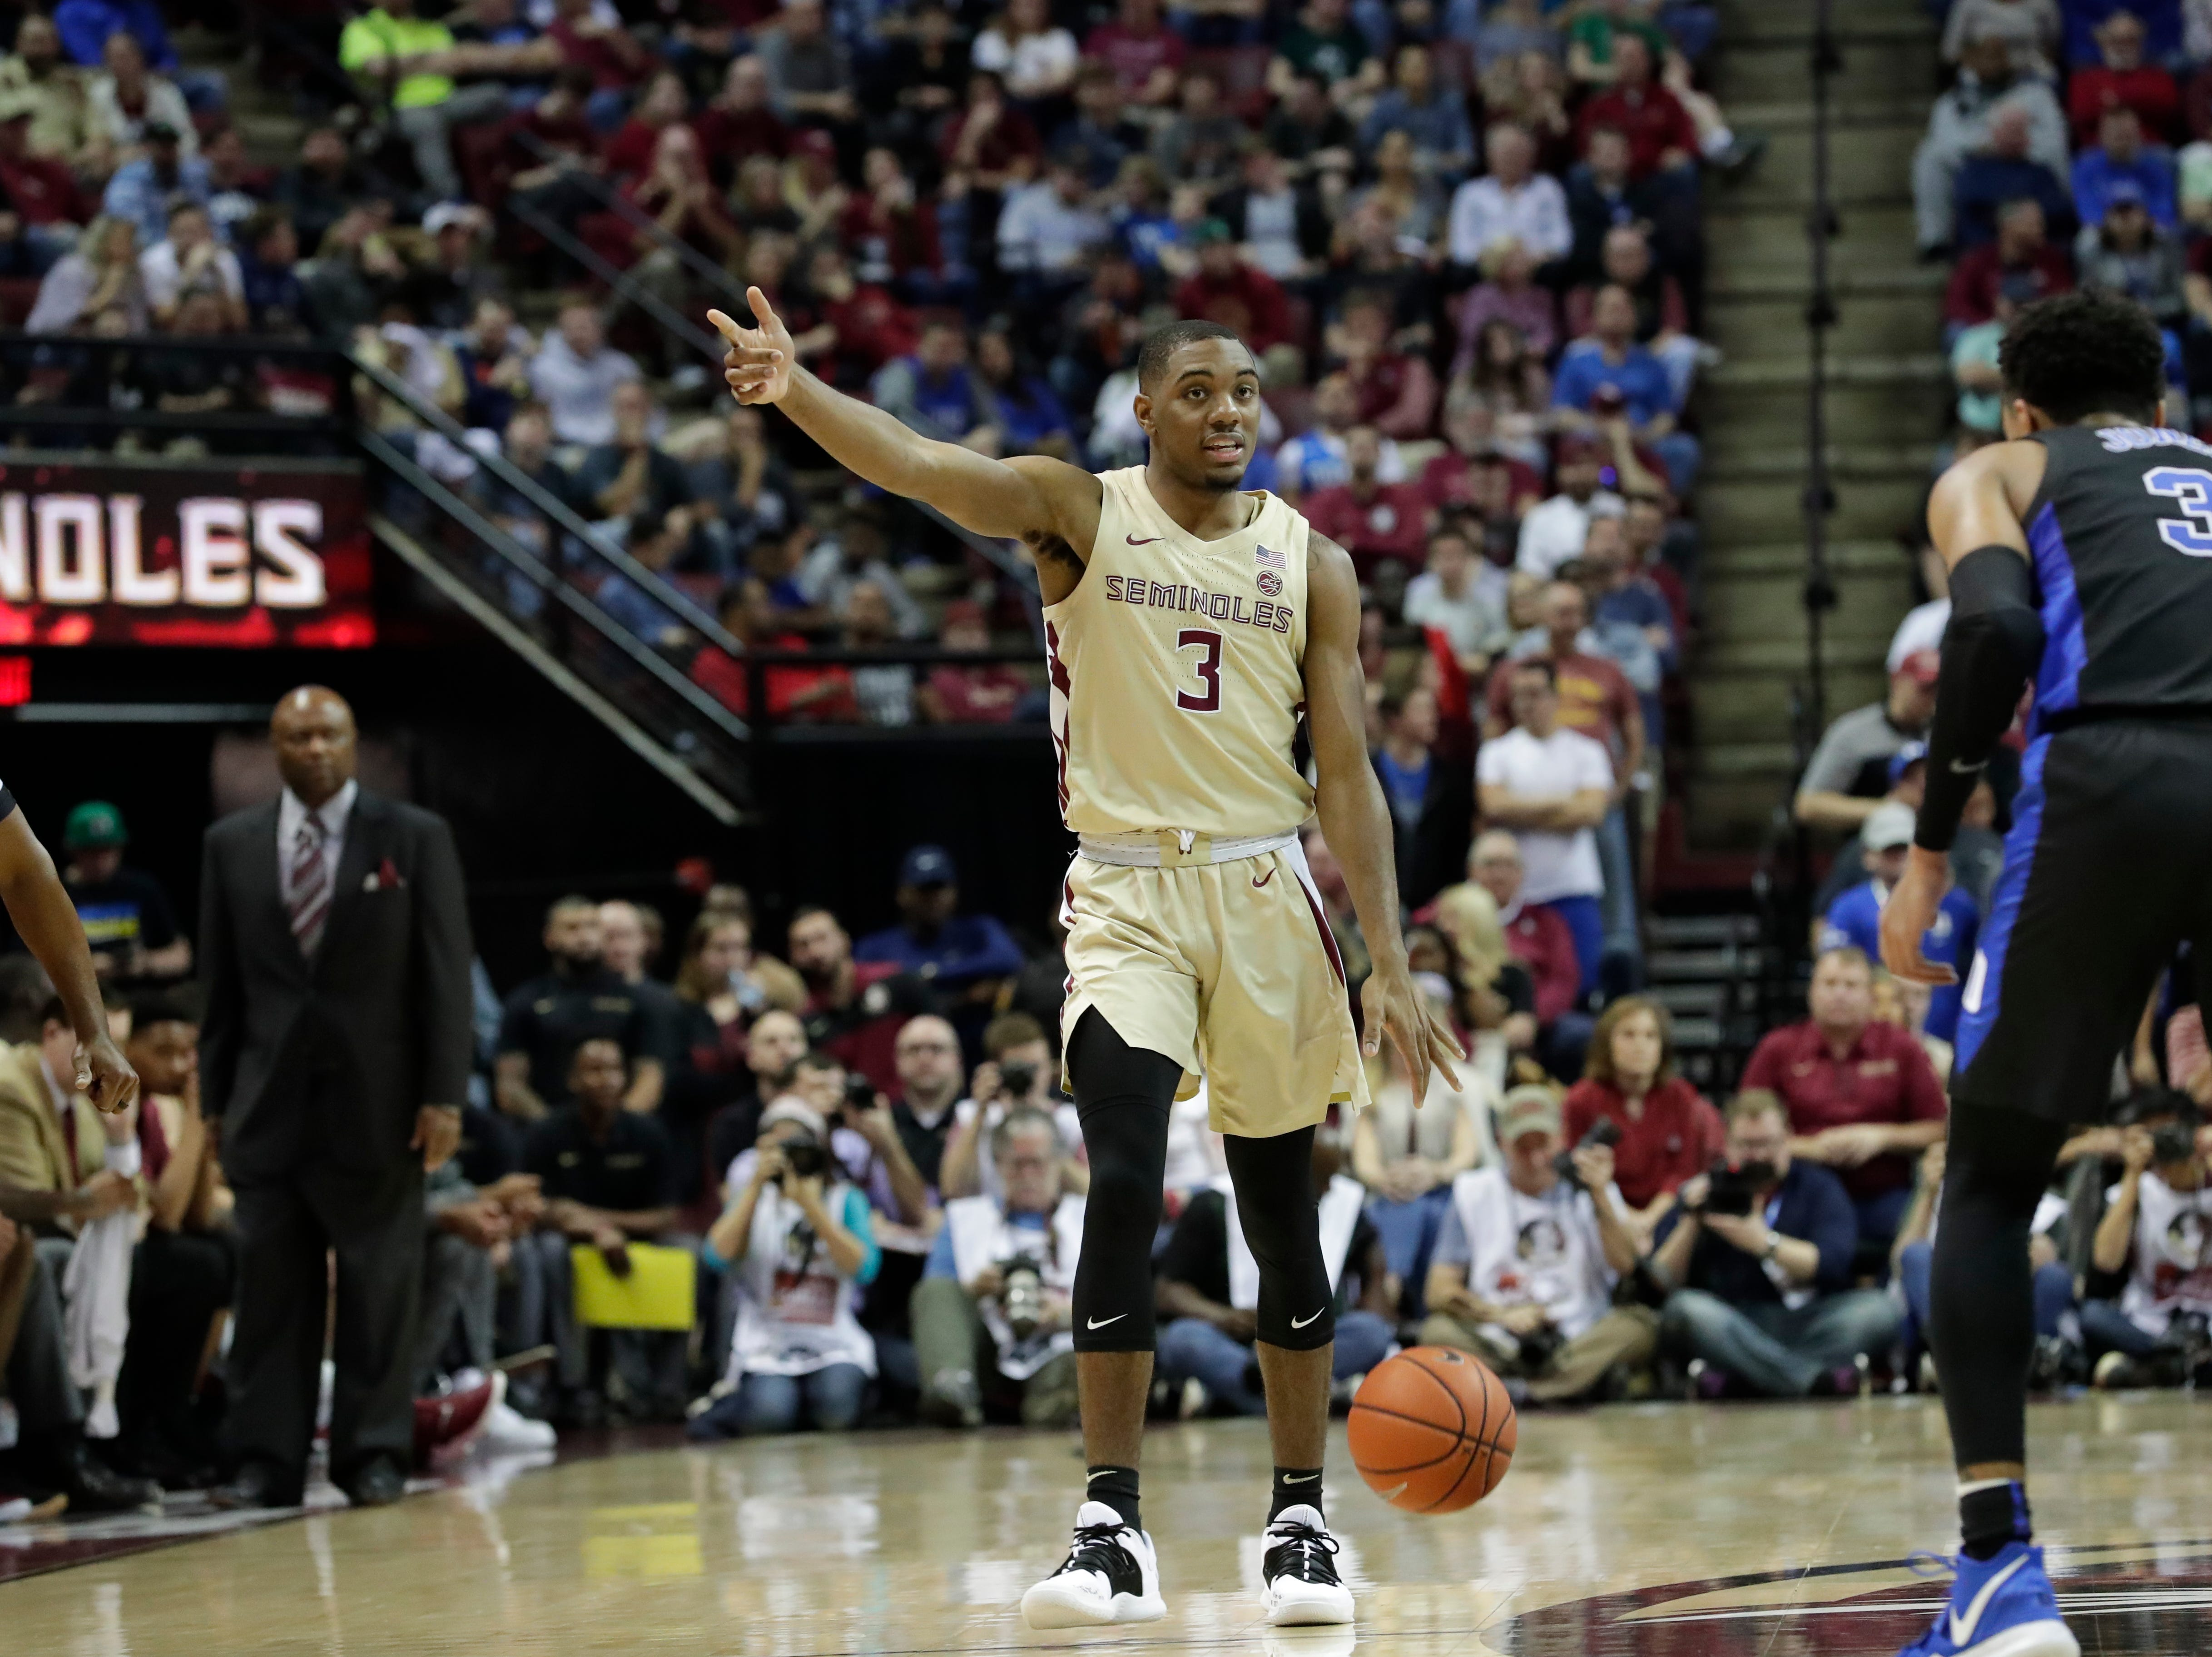 Florida State Seminoles guard Trent Forrest (3) calls a play for his teammates. Ranked 13 in the ACC, the Florida State Seminoles host the number 1 team, the Duke Blue Devils, at the Tucker Civic Center, Saturday, Jan. 12, 2019.